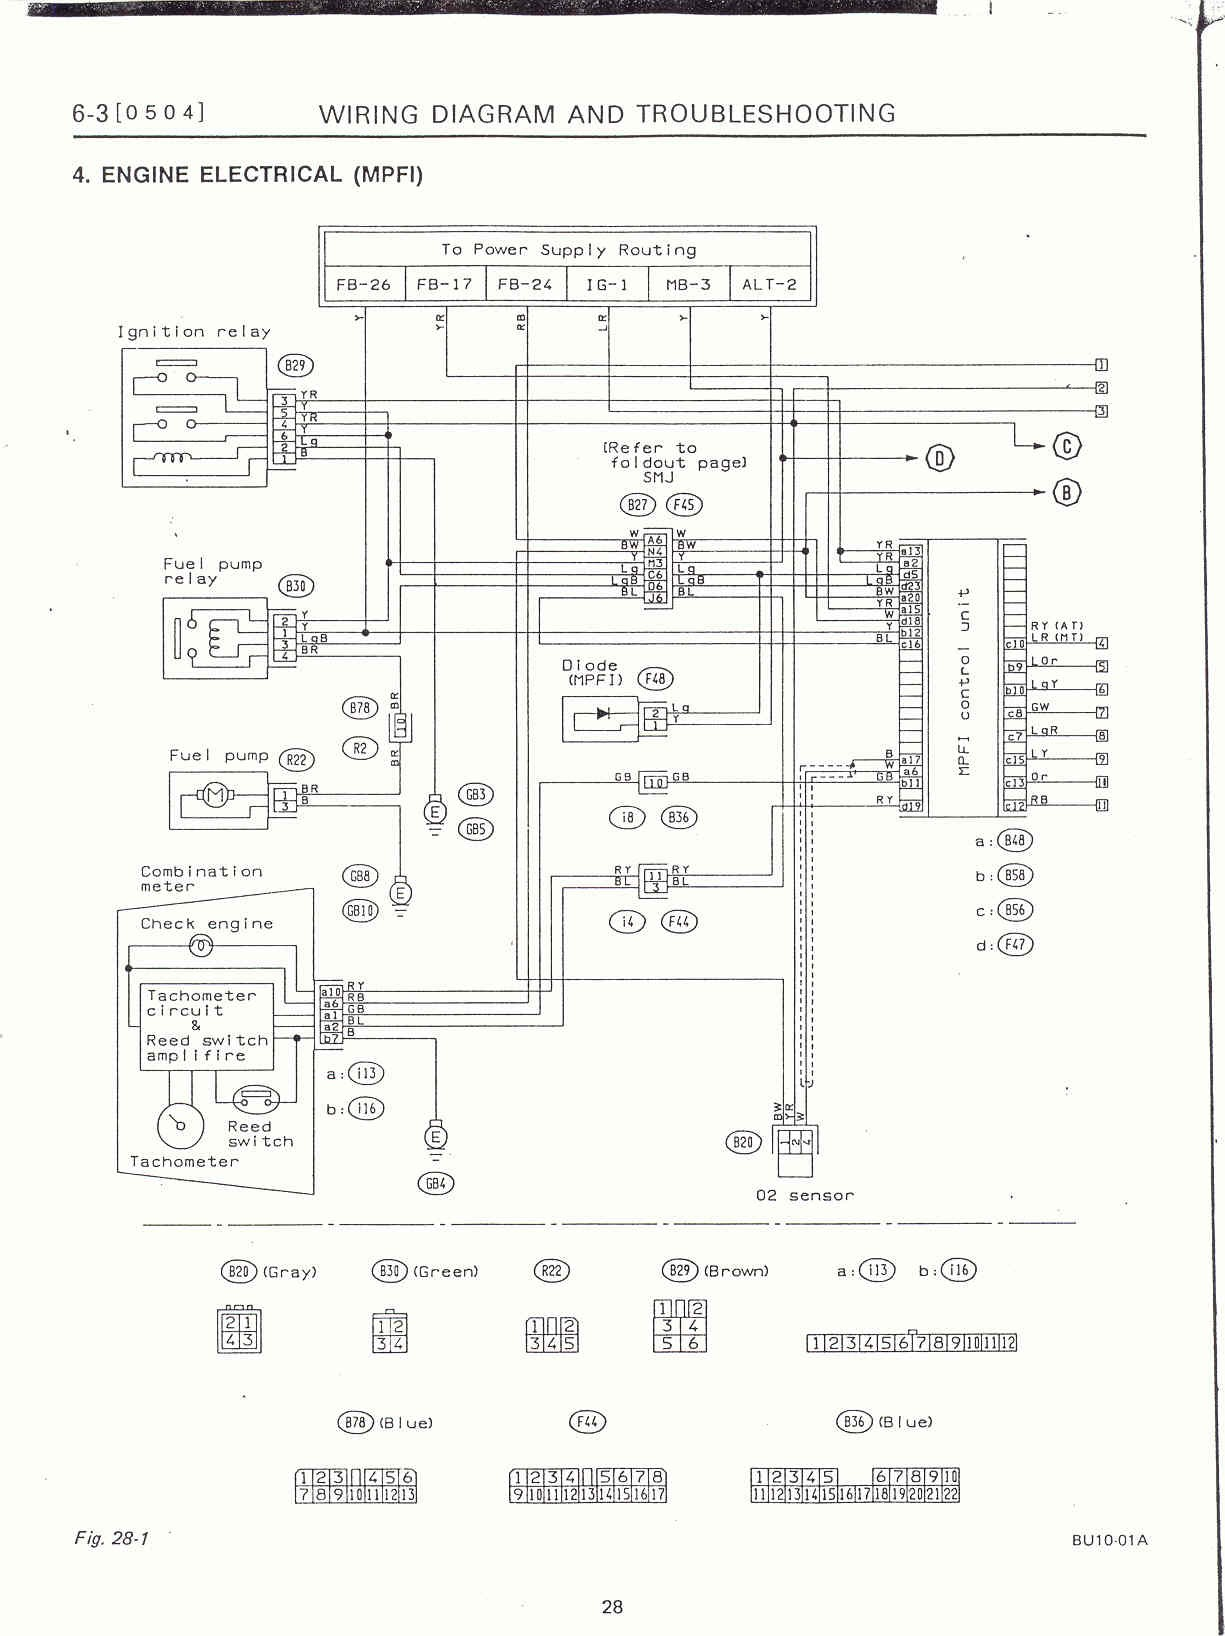 2000 subaru legacy engine diagram wiring diagram u2022 rh growbyte co Subaru Outback Engine Diagram 2004 Subaru Outback Engine Diagram